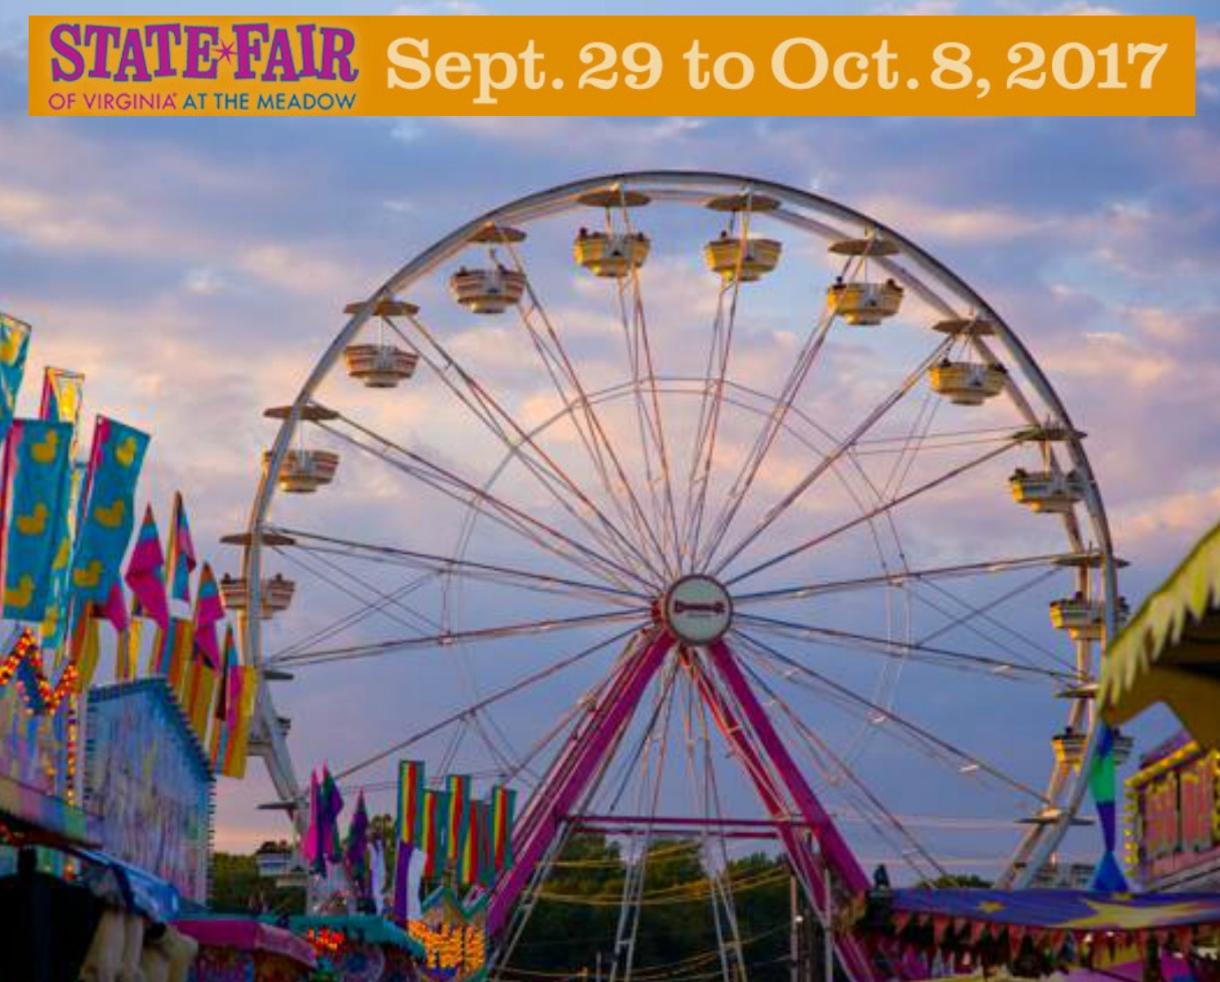 Va state fair coupons 12222 - Virginia State Fair - Schedule, Concert Lineup & Events, Directions